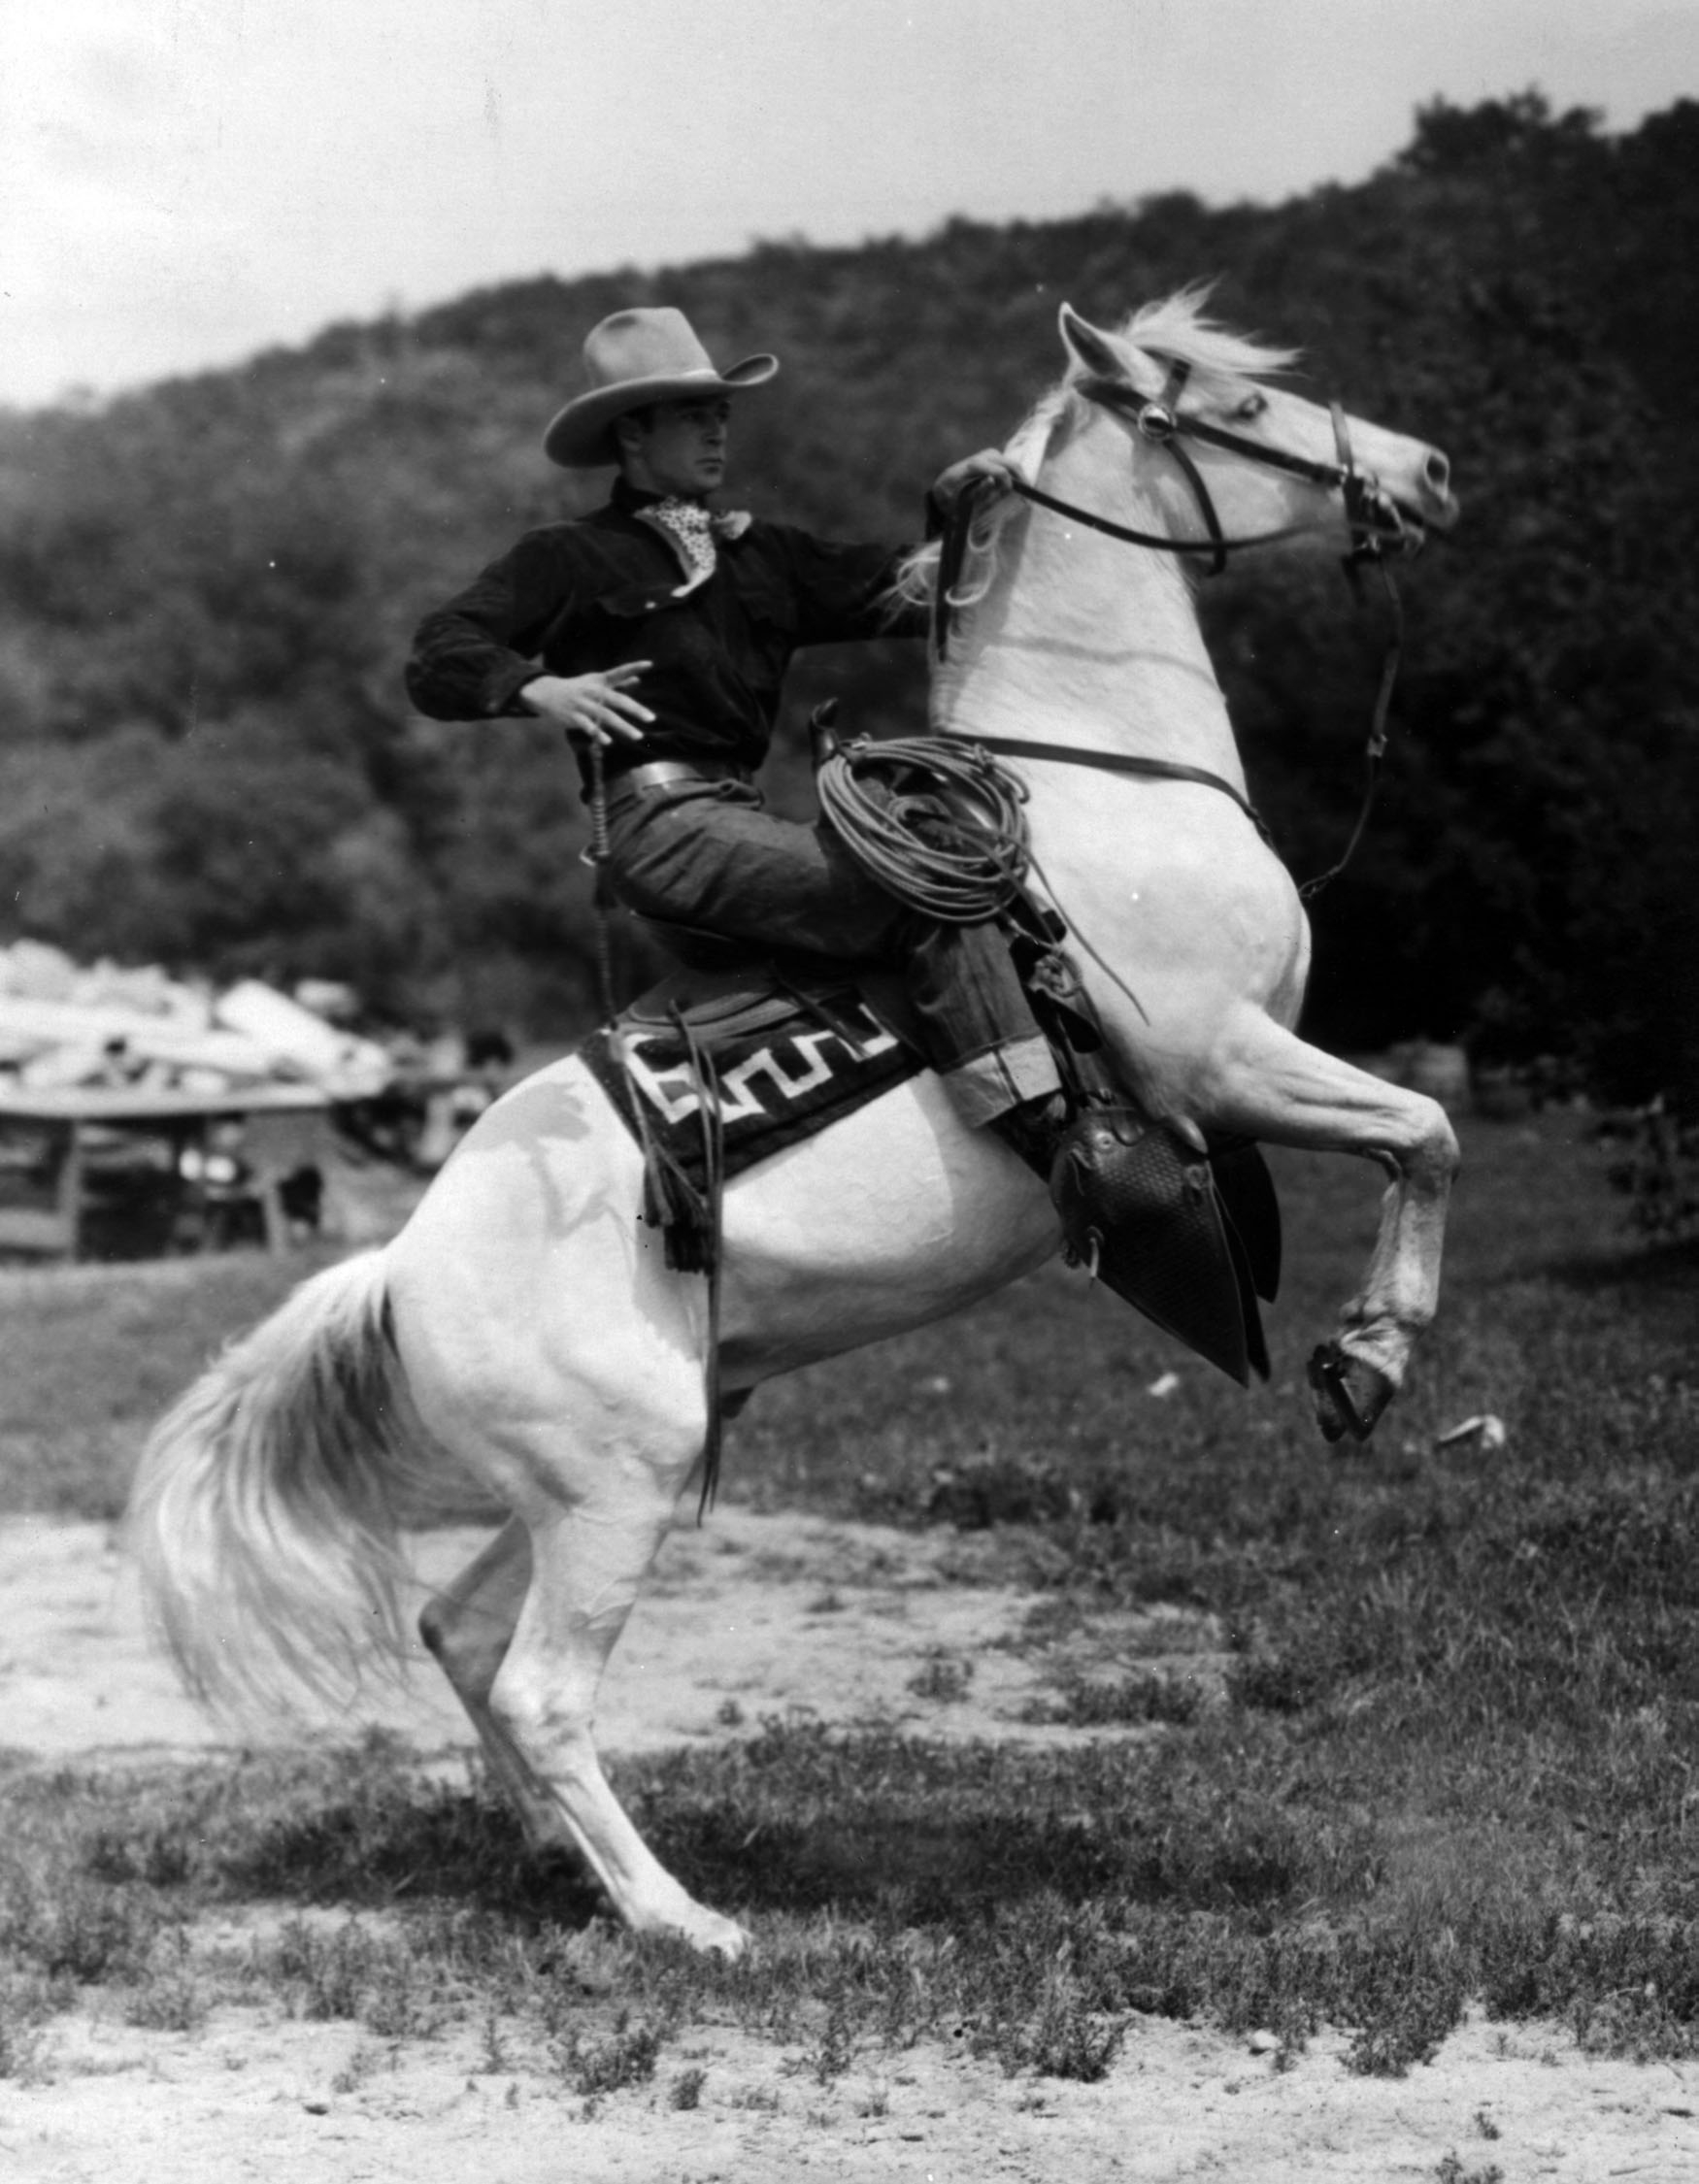 Gary Cooper atop Flash the Wonder-Horse, circa mid-1920s.